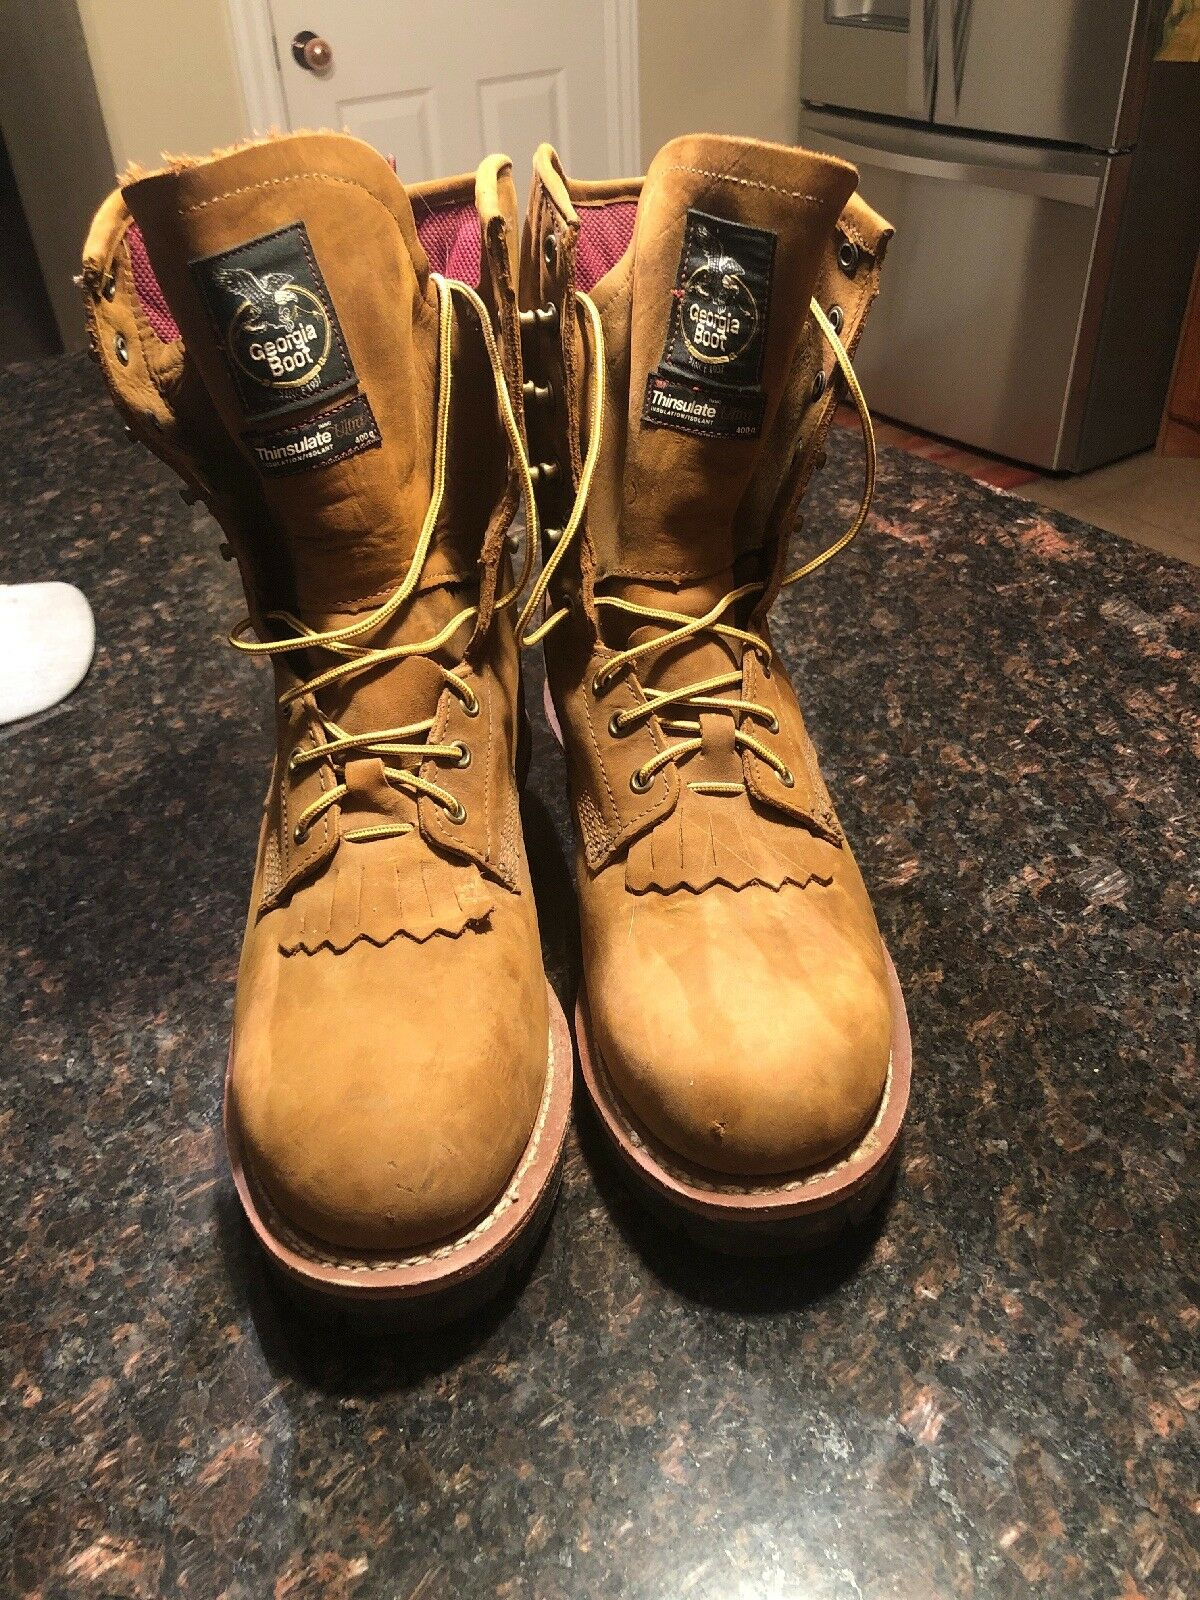 GEORGIA GTX® WTRPF 400G INSULATED STEEL TOE LOGGER WORK BOOTS G9382 Men Size 11